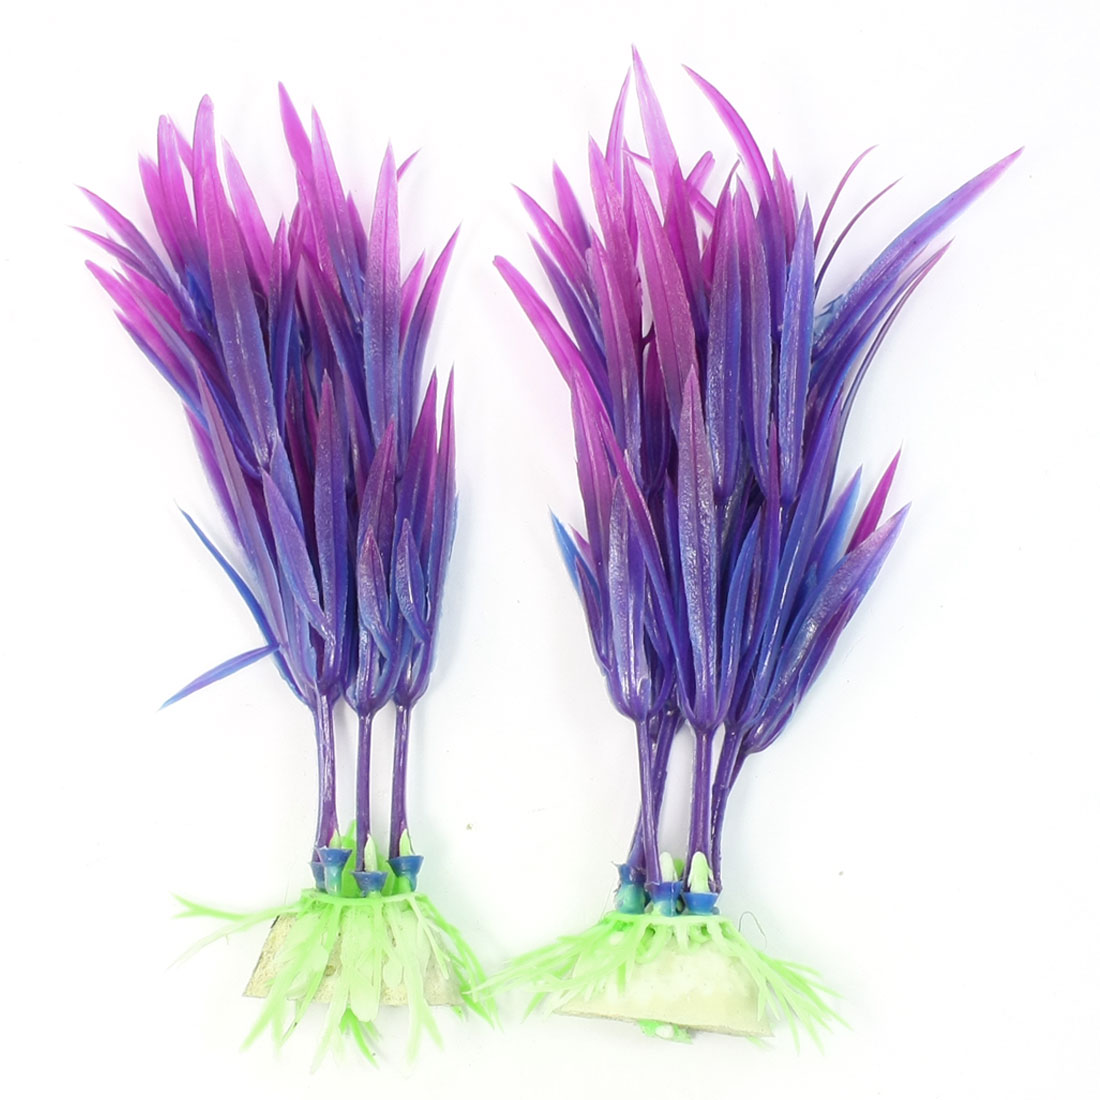 2 Pcs Blue Purple Plastic Manmade Water Aquarium Plant Decor 4""